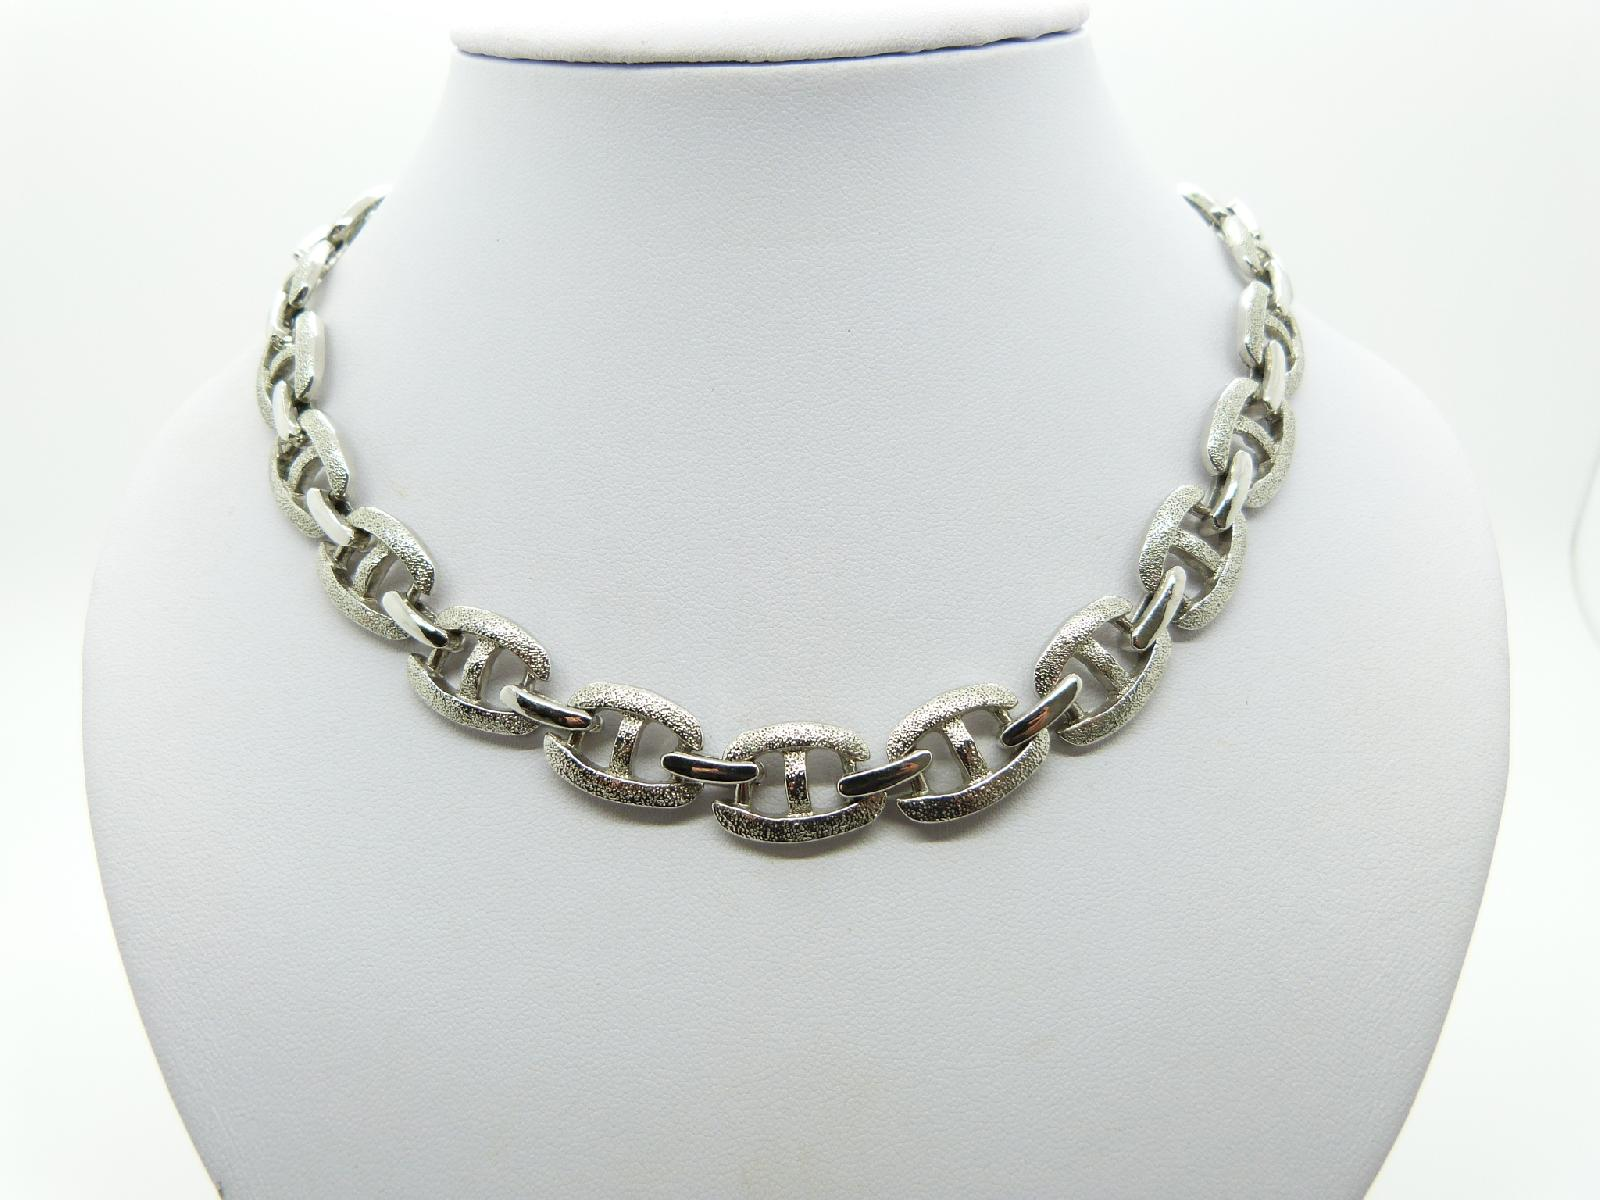 Vintage 60s QualityTextured Fancy Link Modernist Silvertone Necklace 45cms